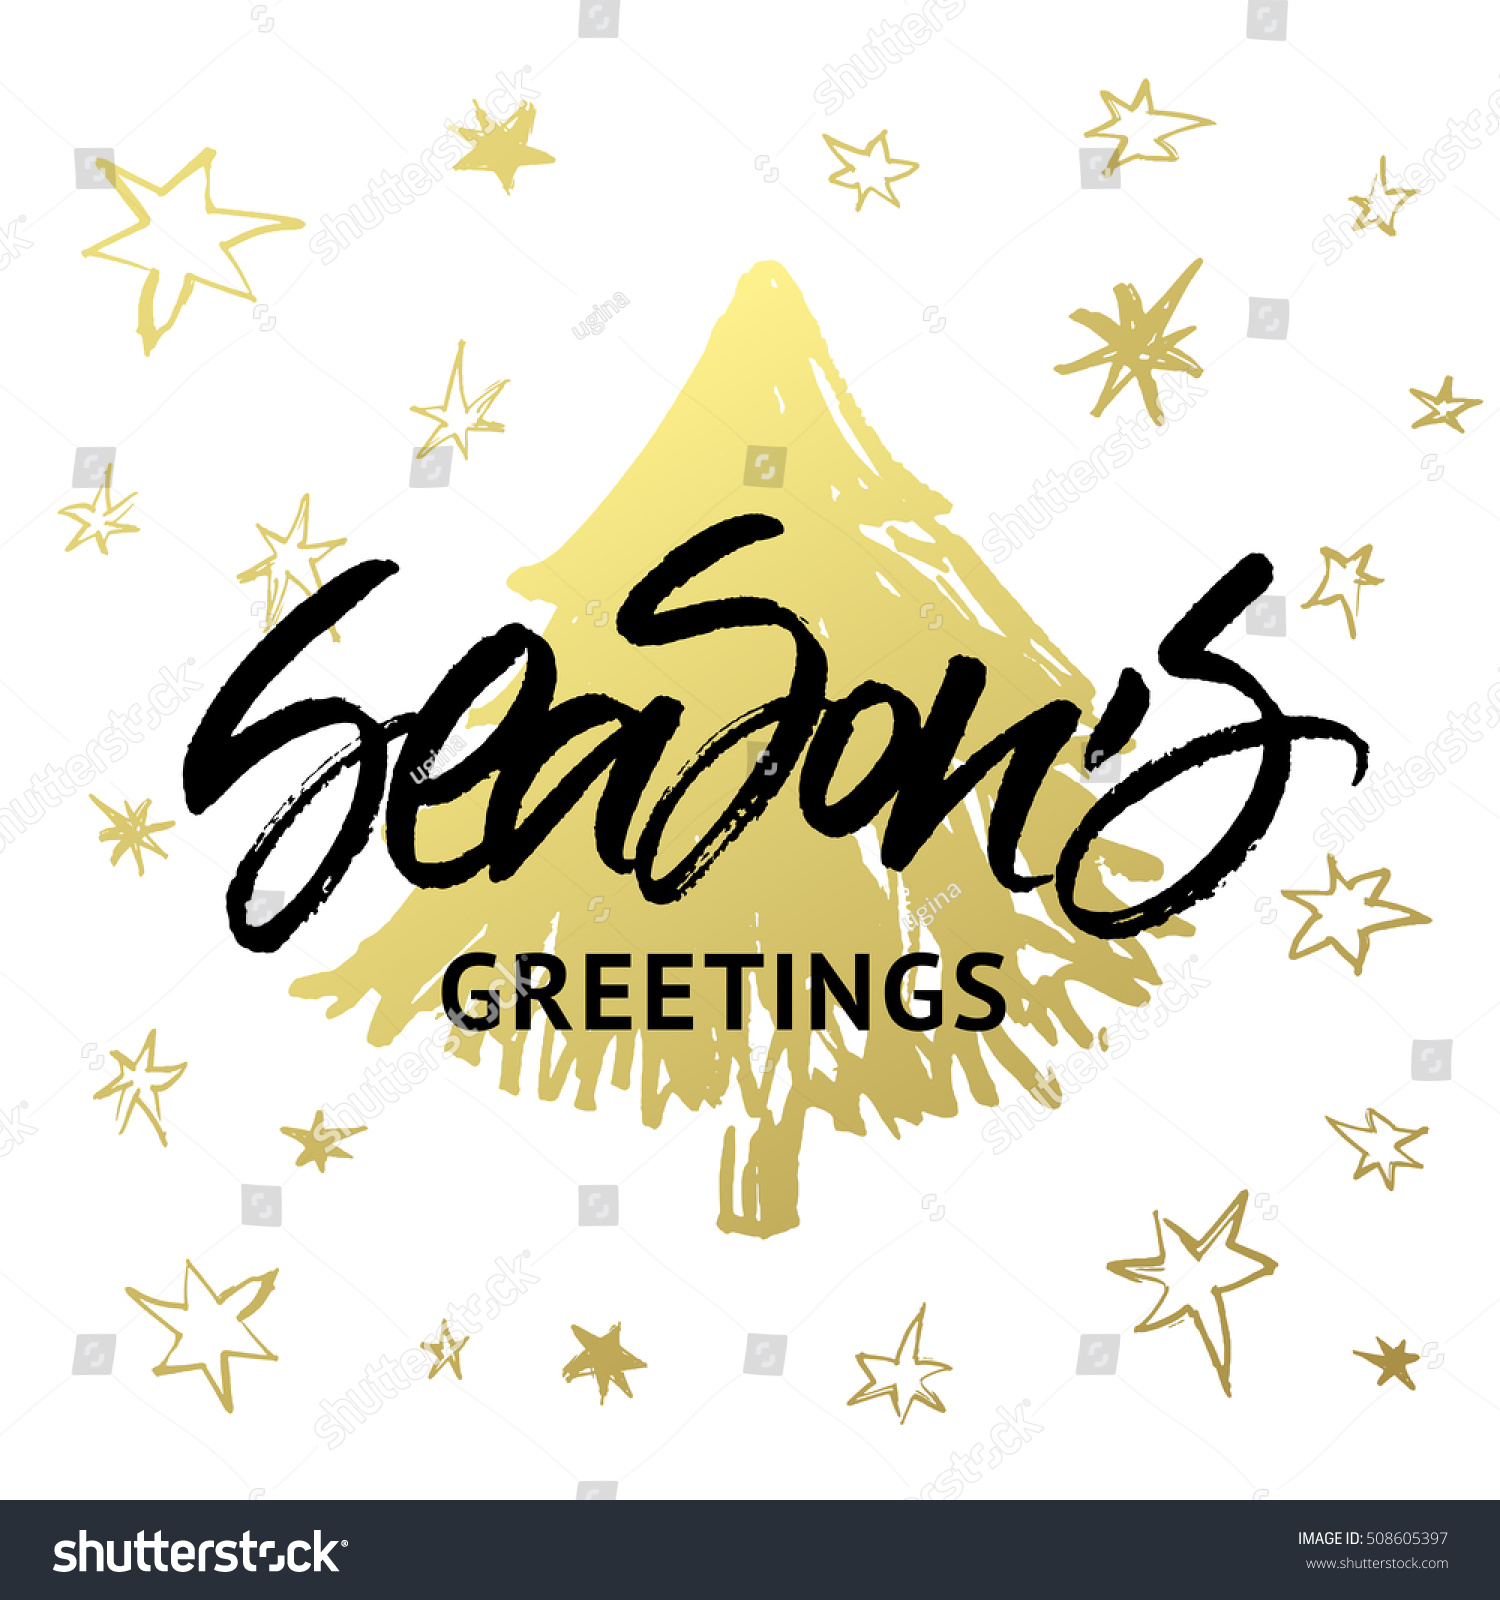 Seasons greetings christmas new year greeting stock vector 508605397 seasons greetings christmas and new year greeting card handwritten brush calligraphy with golden hand painted kristyandbryce Images